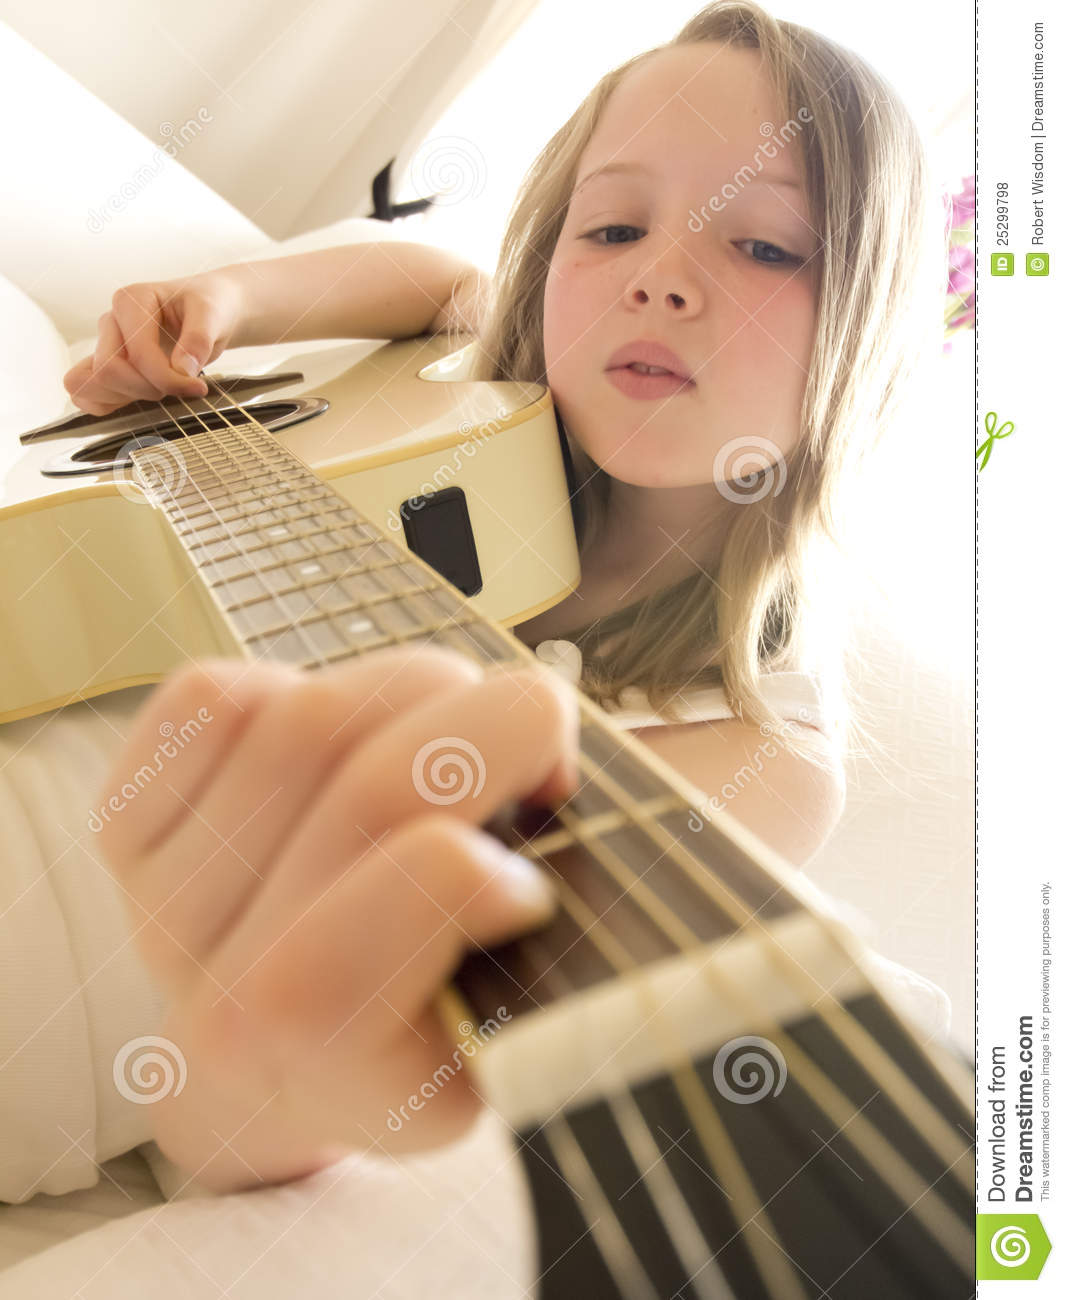 Girl Acoustic Guitars : young girl on a acoustic guitar 5 stock photo image 25299798 ~ Vivirlamusica.com Haus und Dekorationen